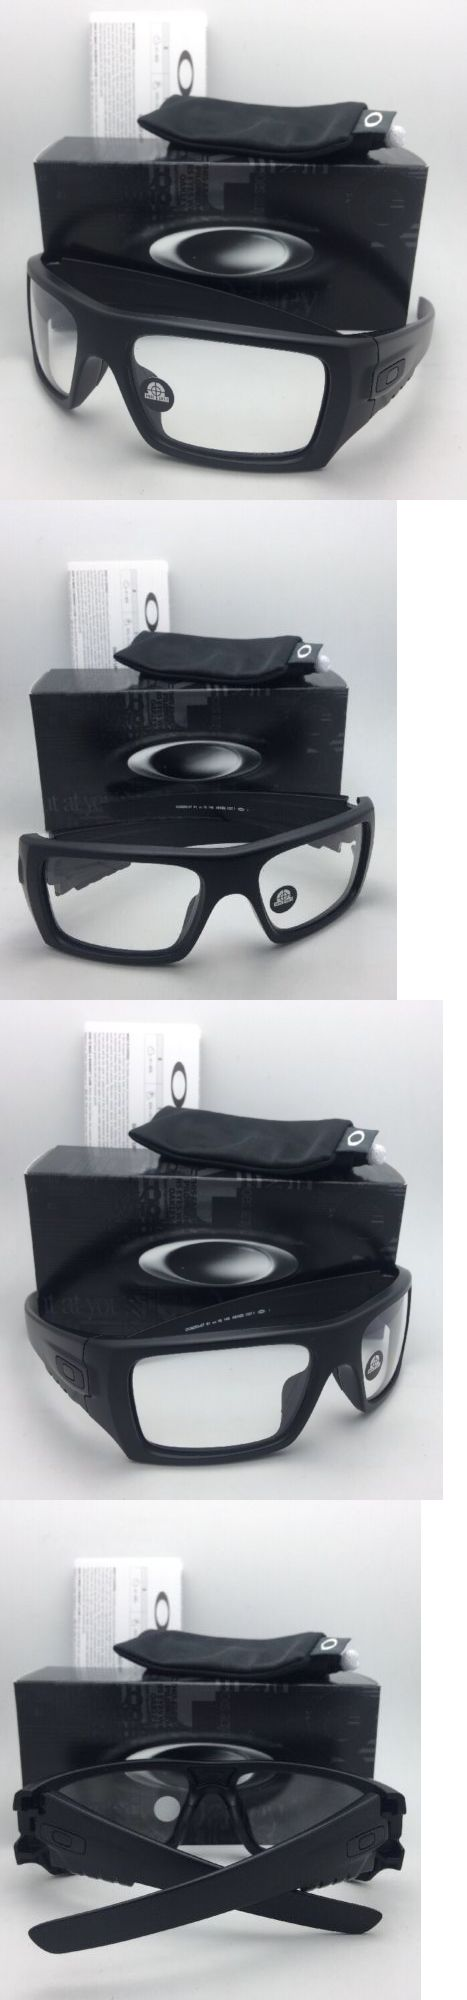 oakley ansi z87.1 glasses  other vision care: oakley si industrial det cord safety glasses oo9253 07 black